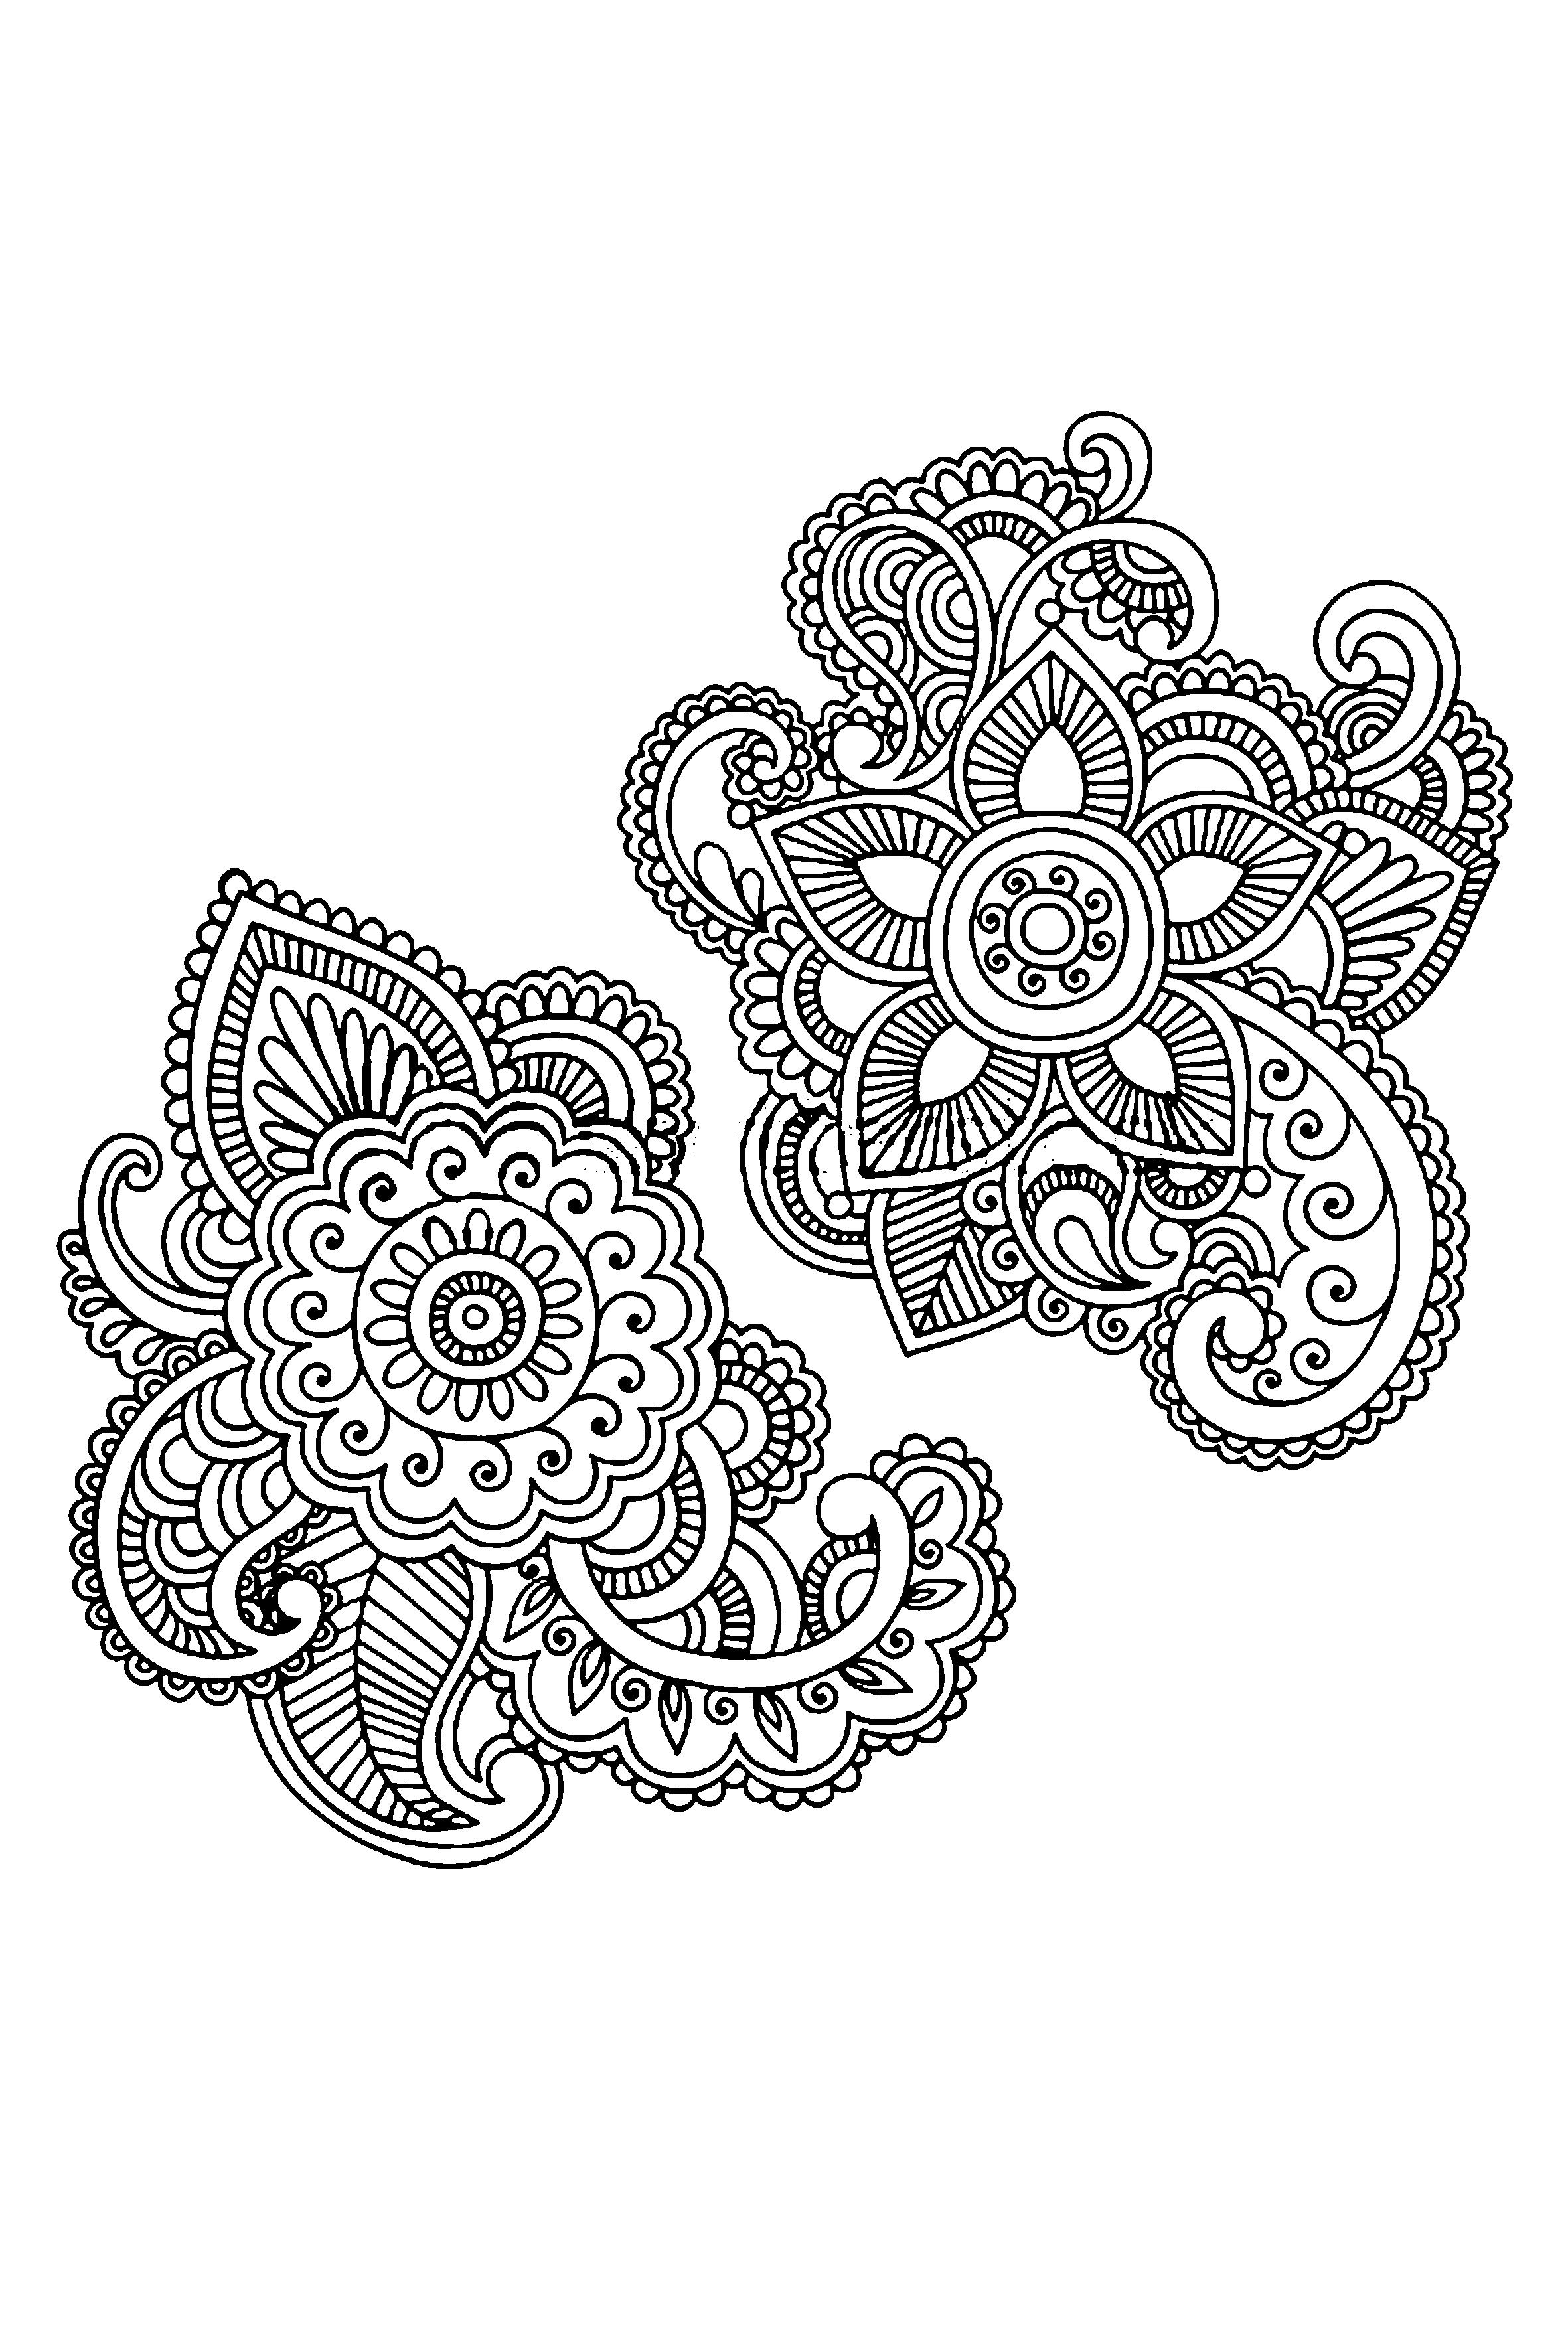 henna flowers hand drawn abstract henna mehndi paisley doodle vector illustration. Black Bedroom Furniture Sets. Home Design Ideas